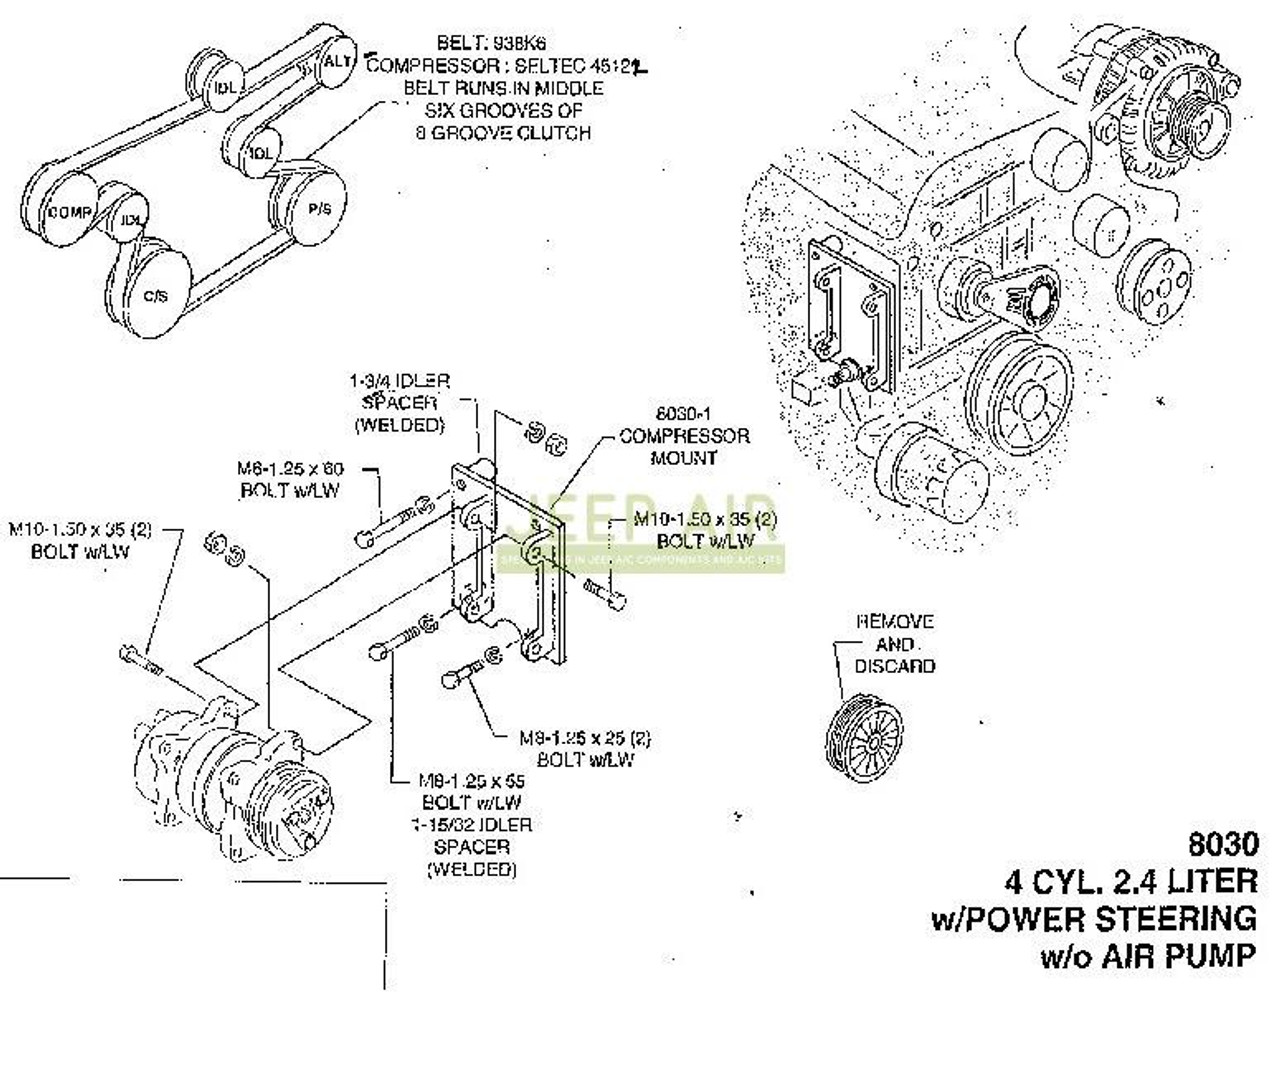 small resolution of 2003 jeep wrangler engine diagram wiring diagram toolbox belt diagram besides jeep wrangler steering column diagram besides